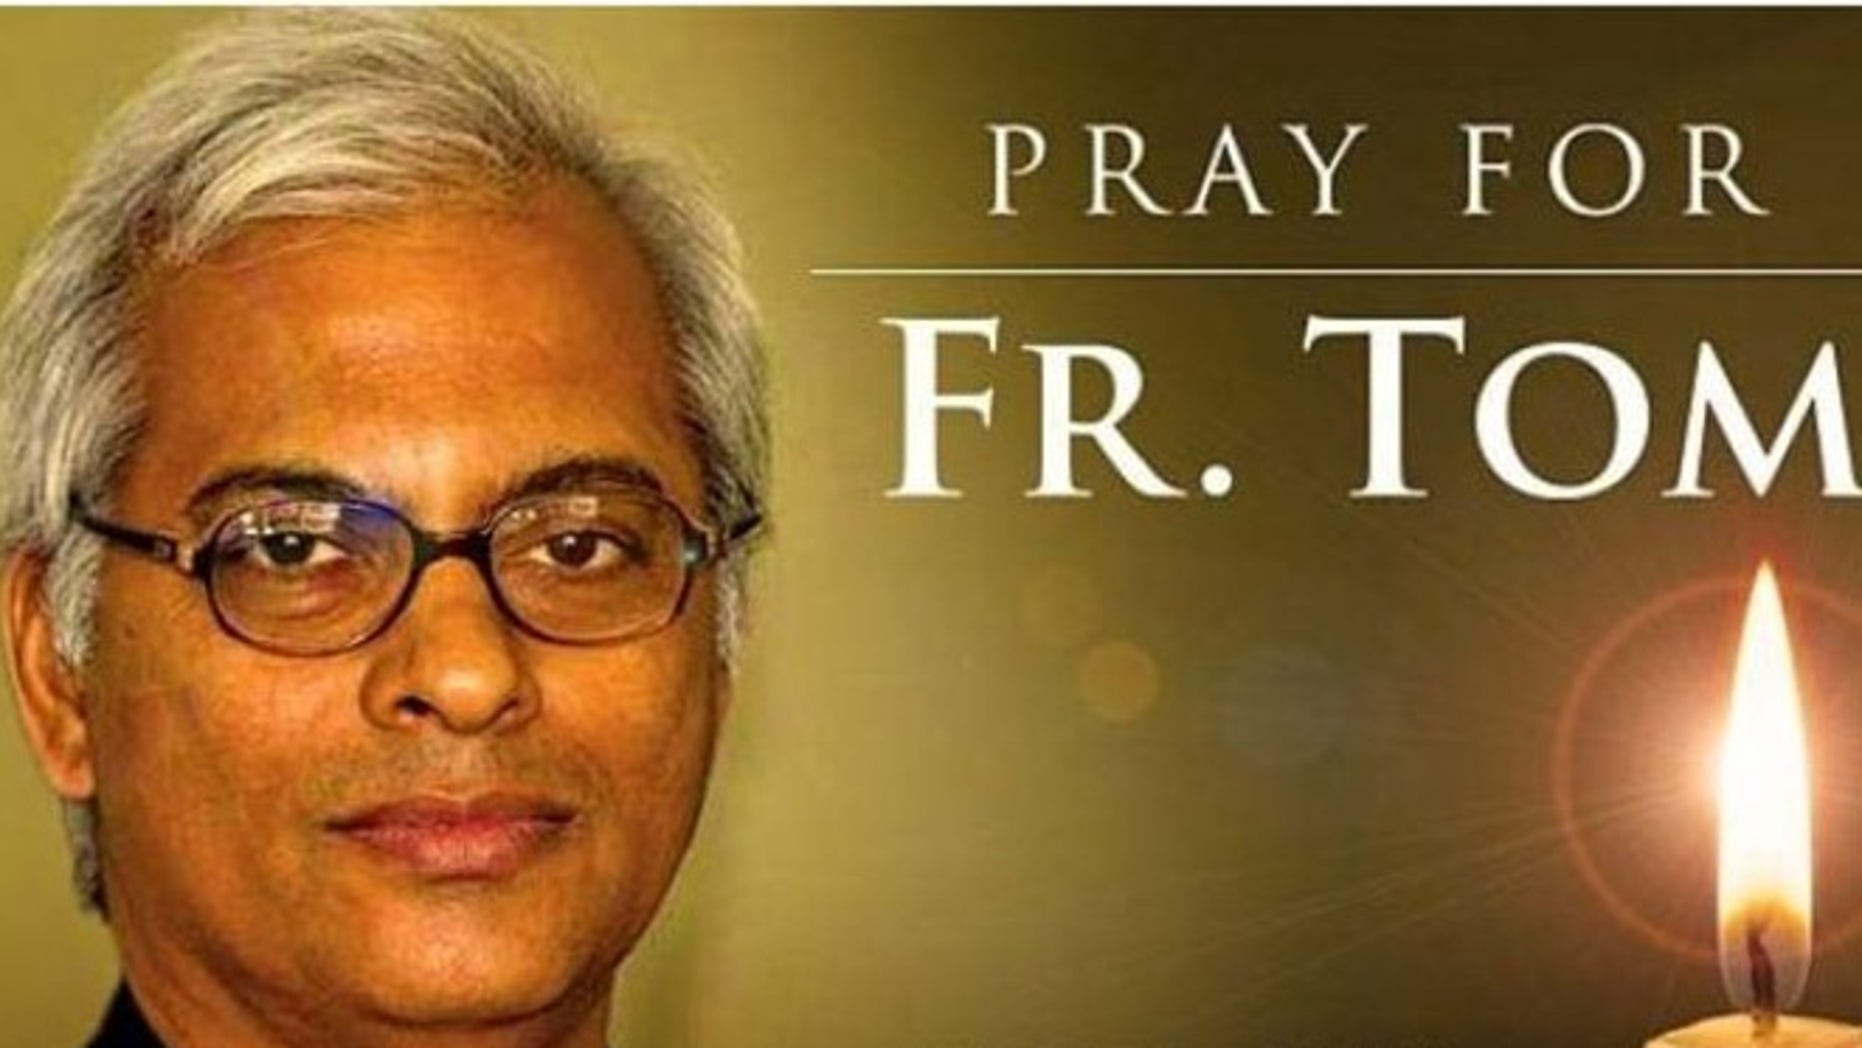 Father Tom Uzhunnalil is alive, according to an Indian government official.